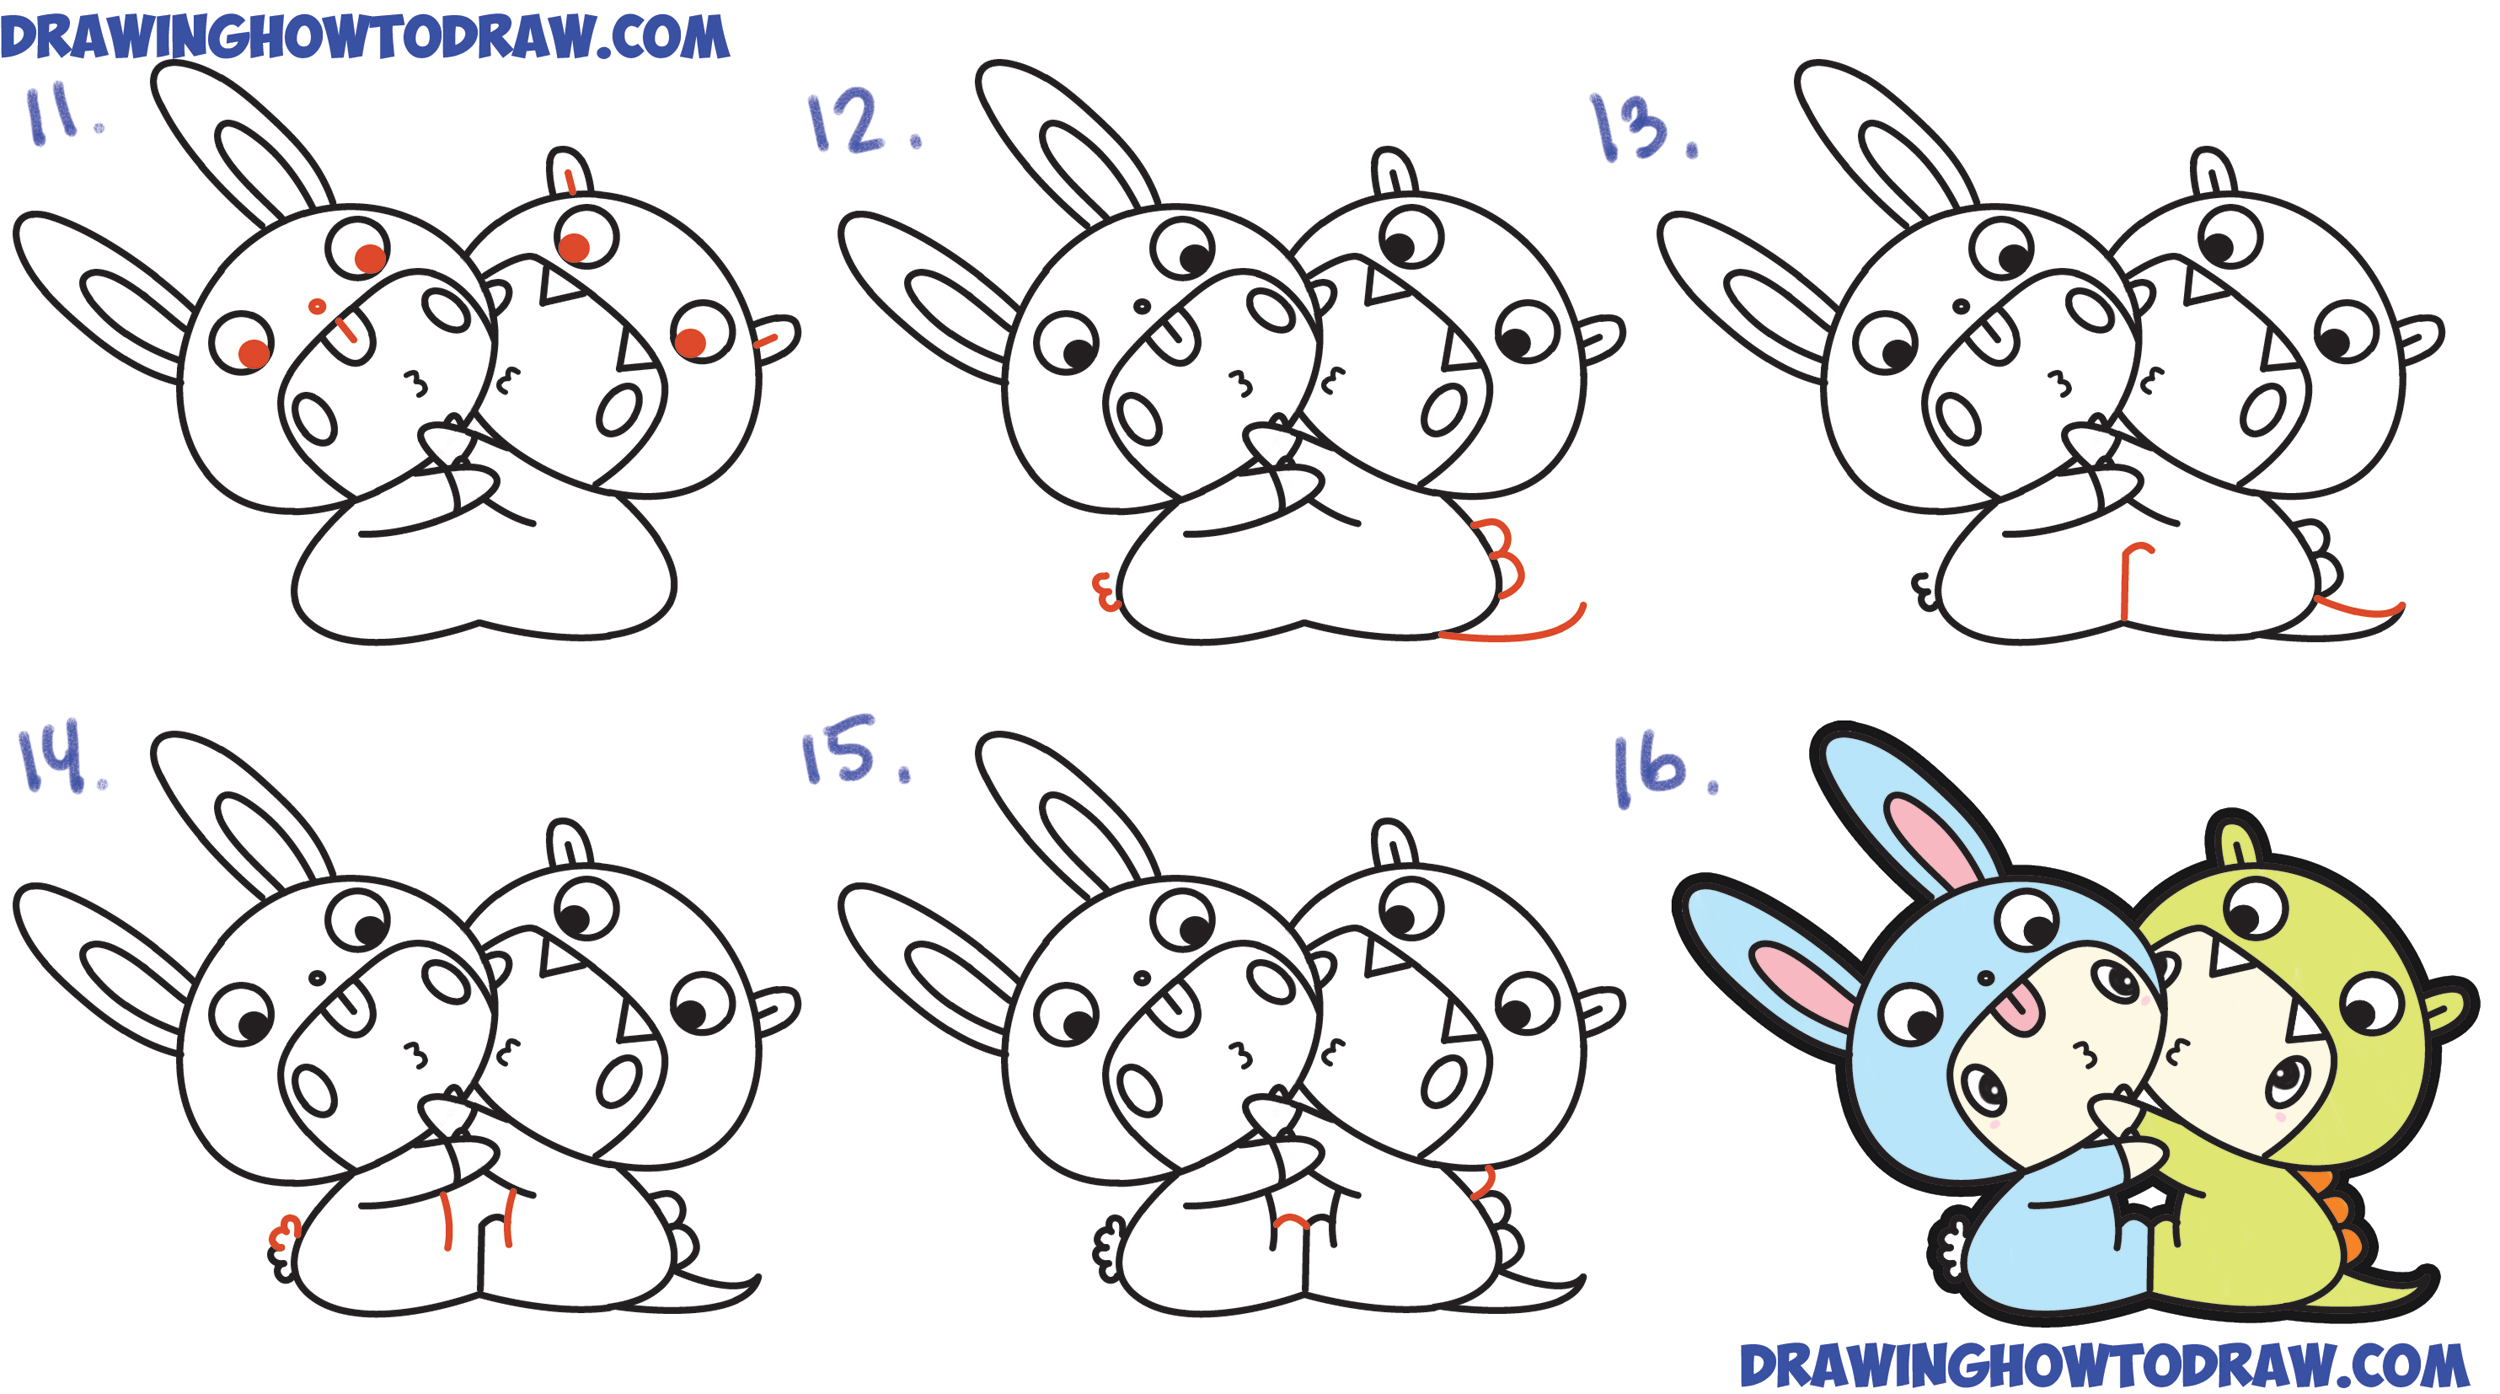 Easy Steps By Alfred Aho Chibi Kids Dressed Up In Costumes With Hoods  ( How To Draw A Cute Cartoon Bunny